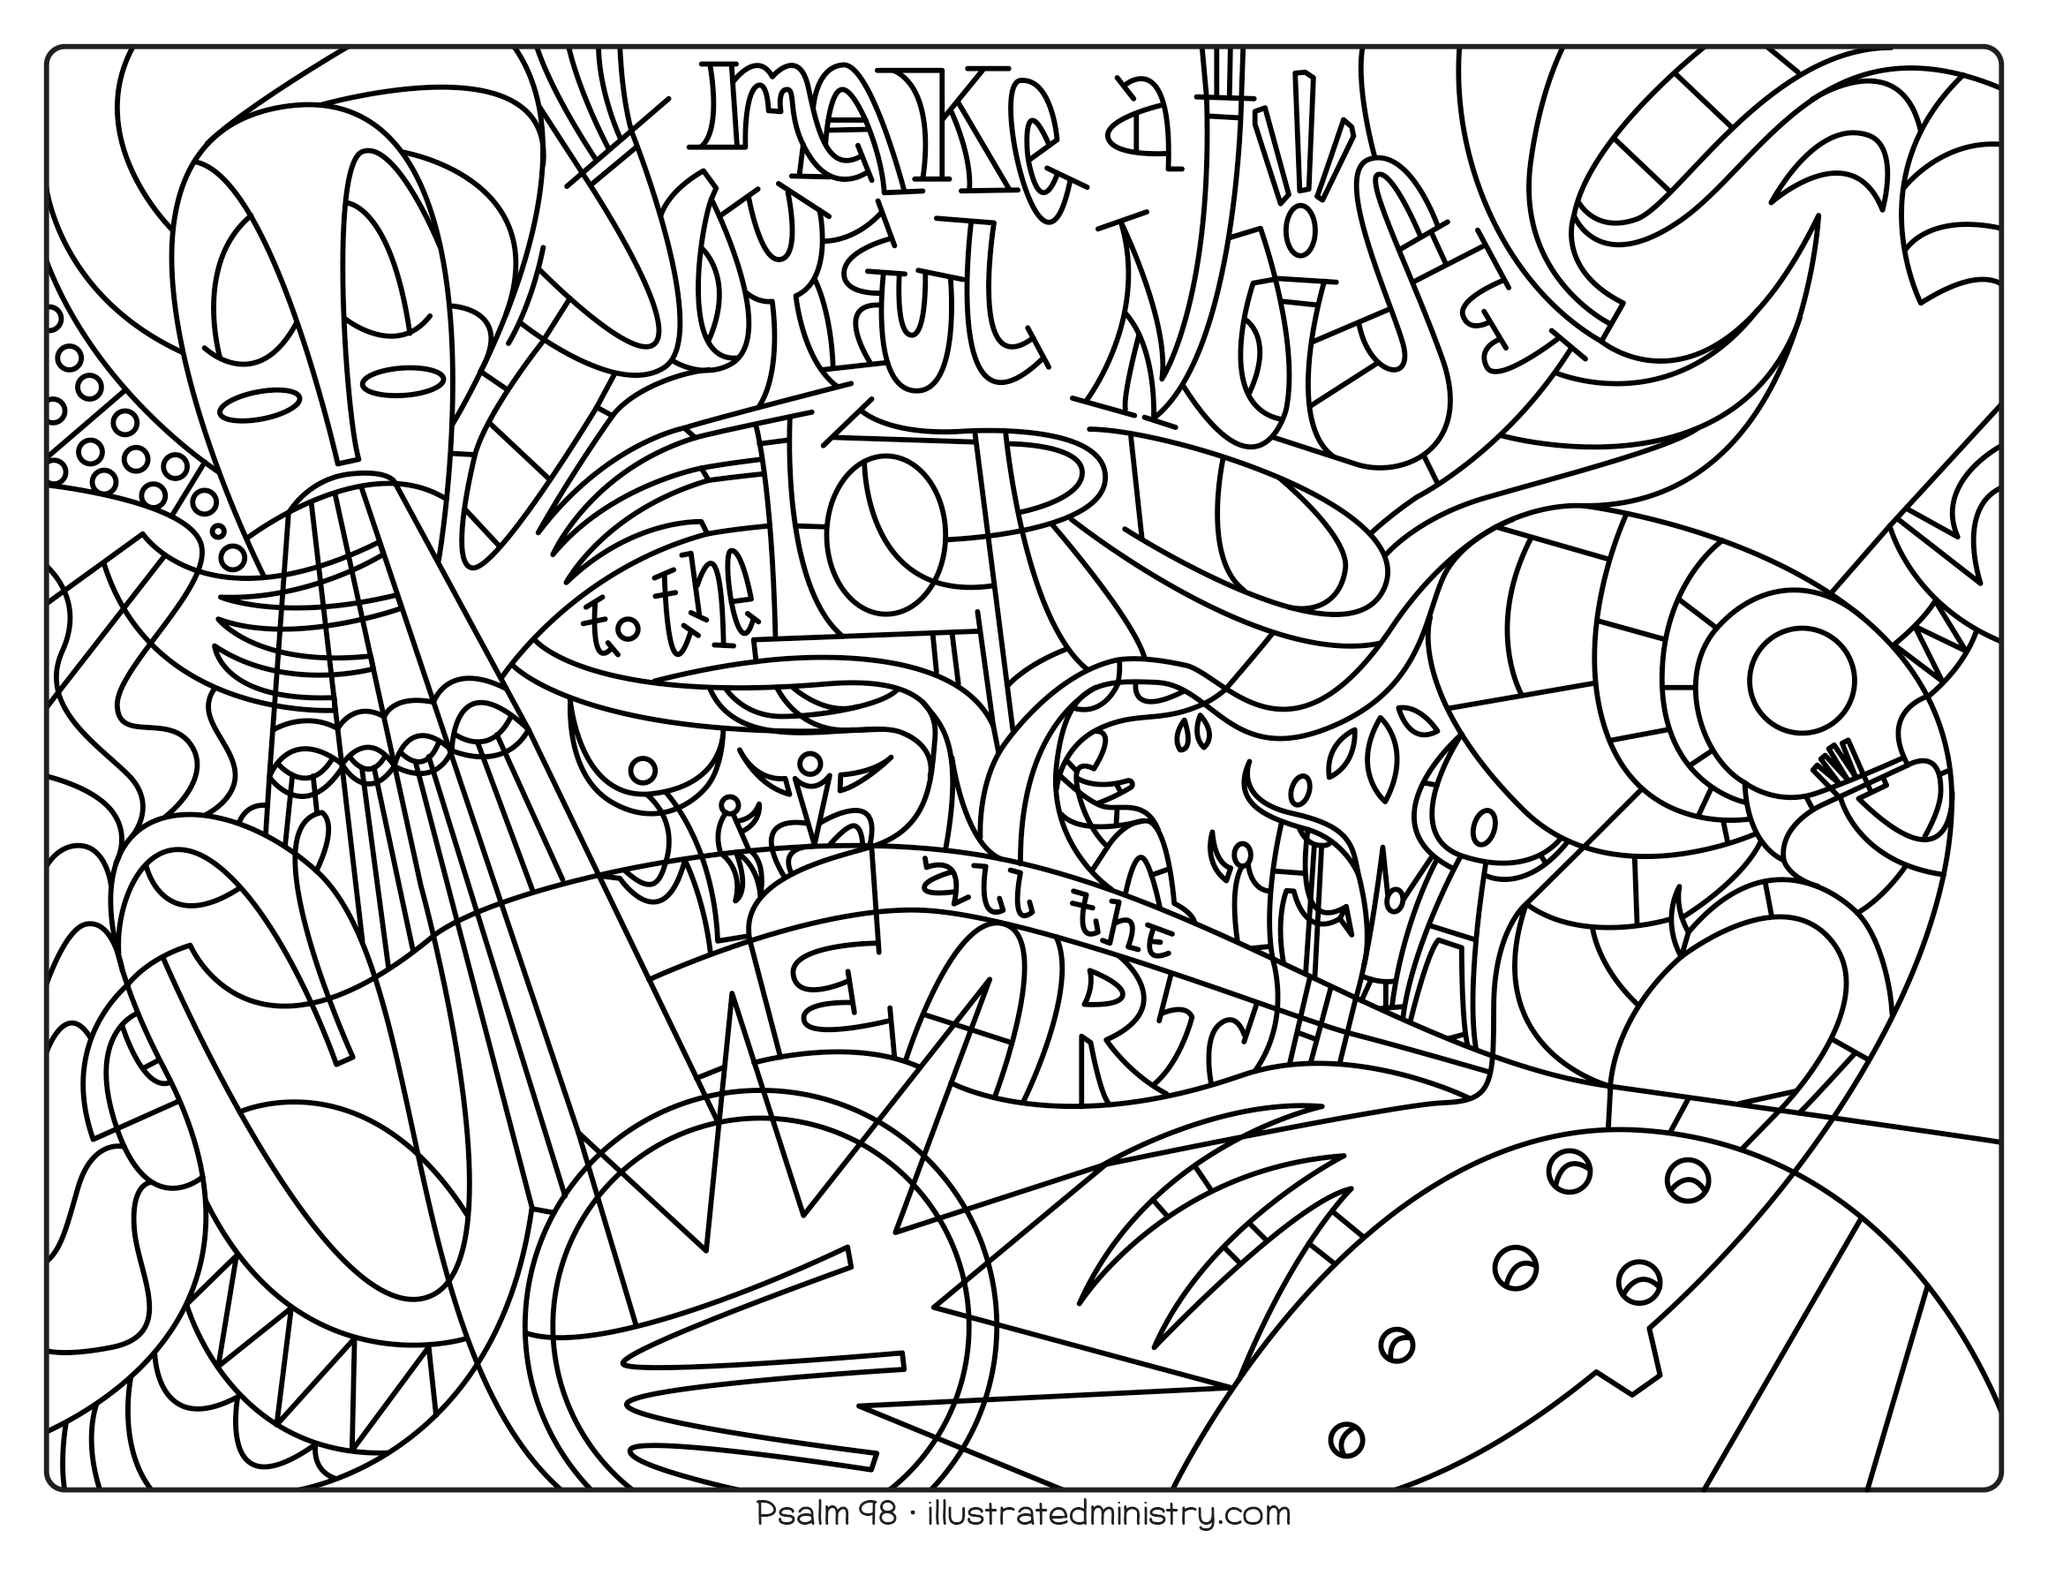 Bible Story Coloring Pages: Spring 2021